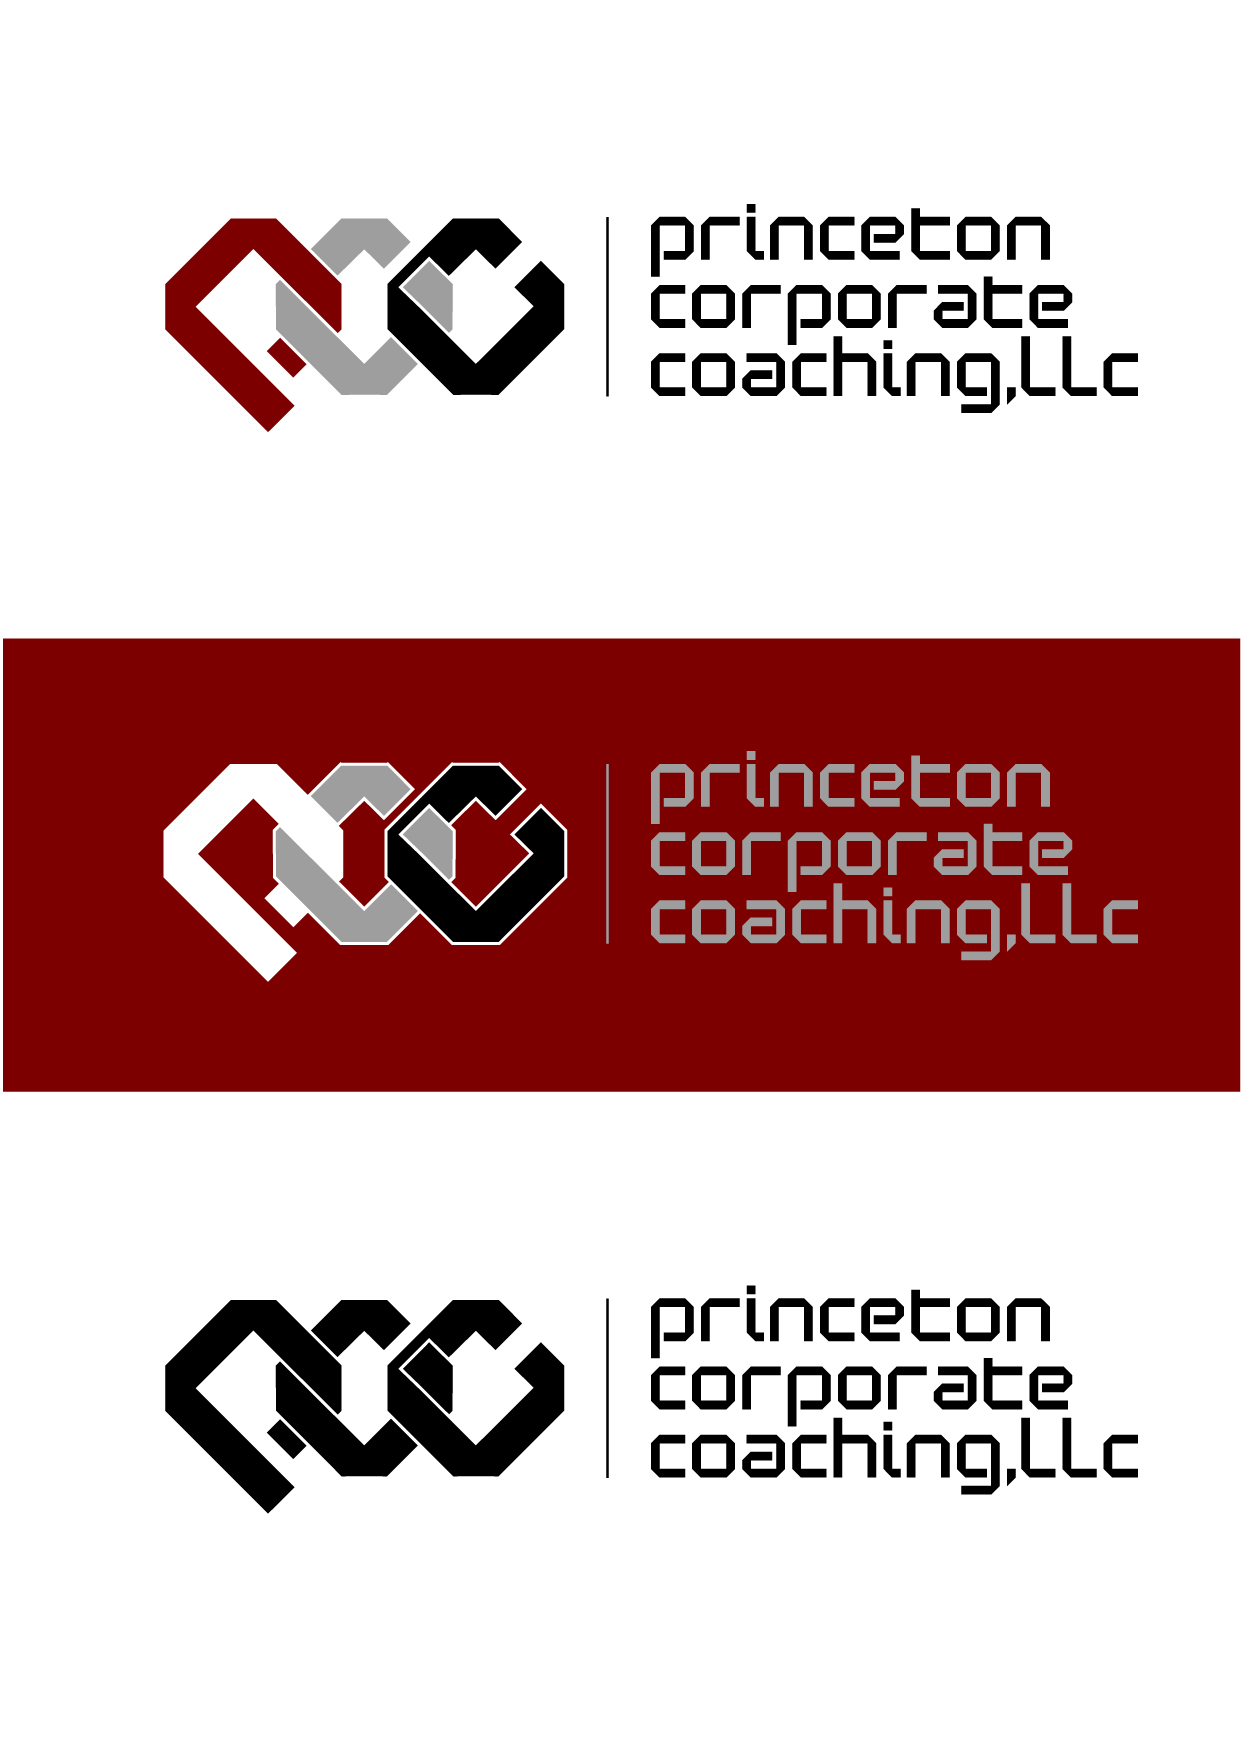 Logo Design by Wilfredo Mendoza - Entry No. 74 in the Logo Design Contest Unique Logo Design Wanted for Princeton Corporate Coaching, LLC.